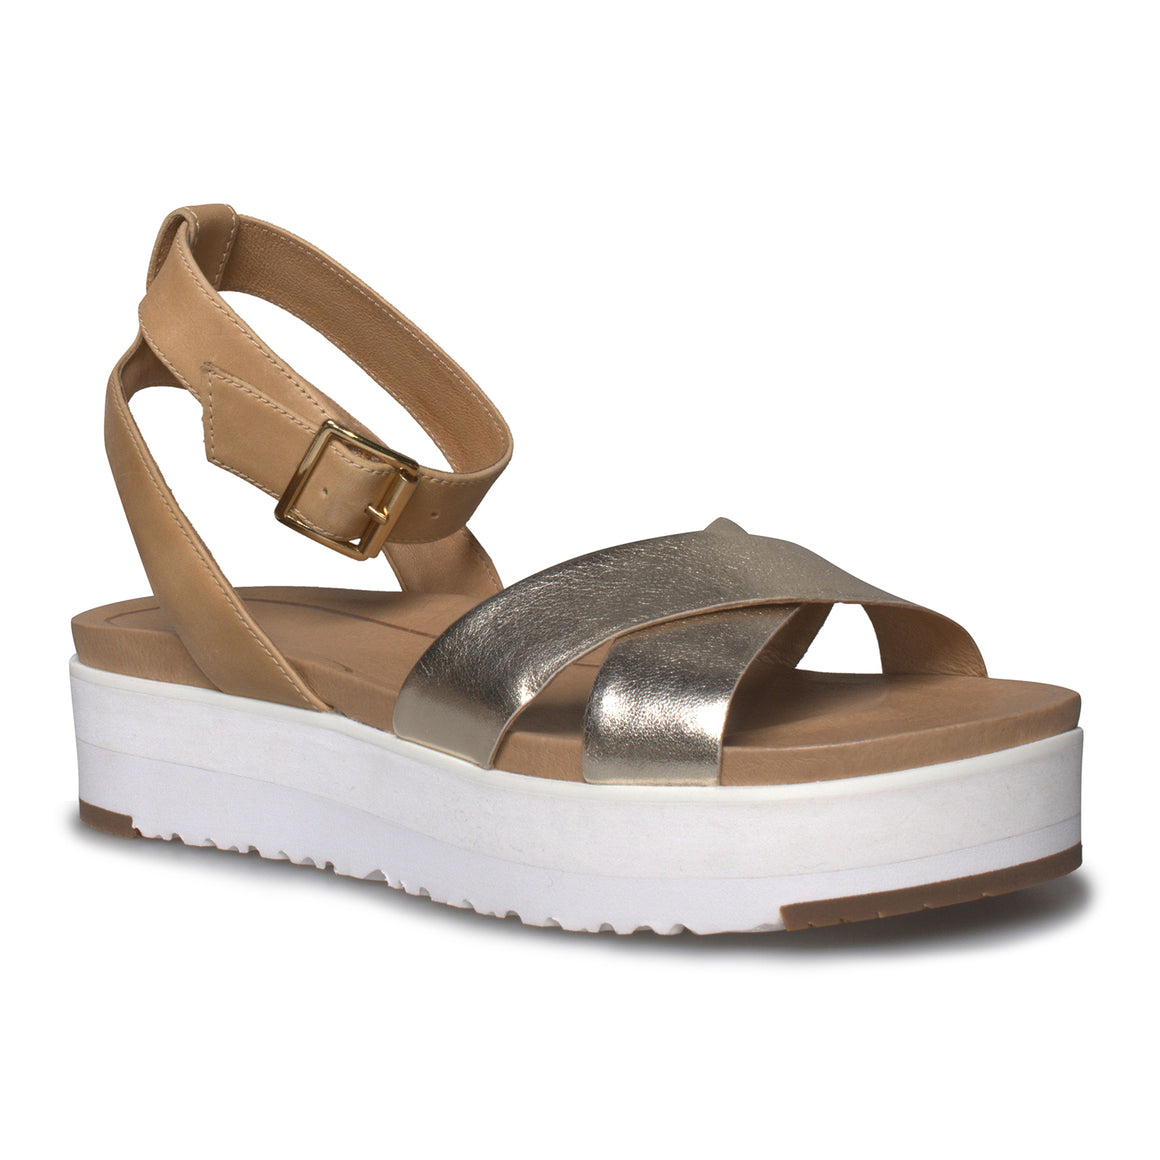 UGG Tipton Gold Sandals - Women's